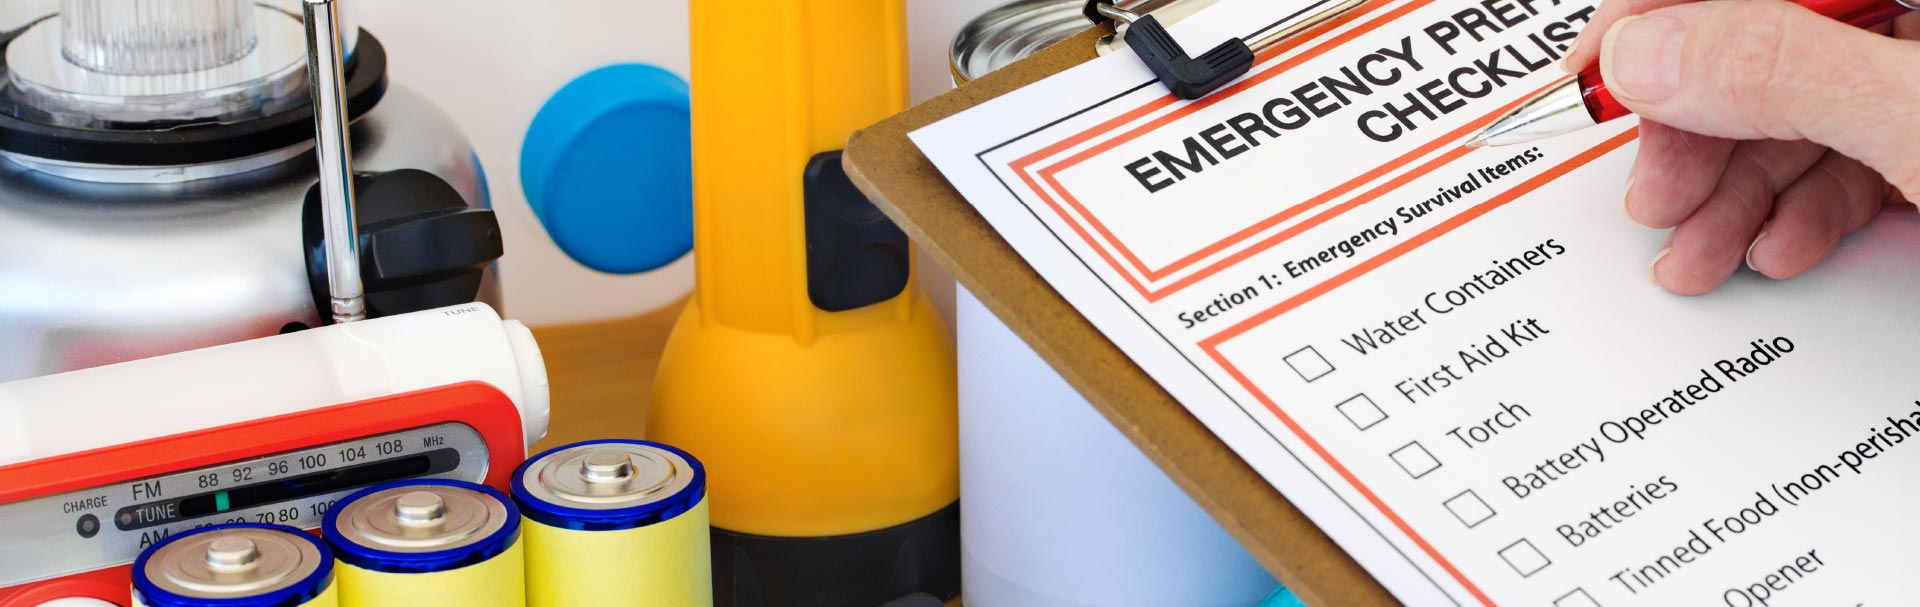 PUL1073 PulseEnergy EmergenciesFaultOutages Banner 1920x607px